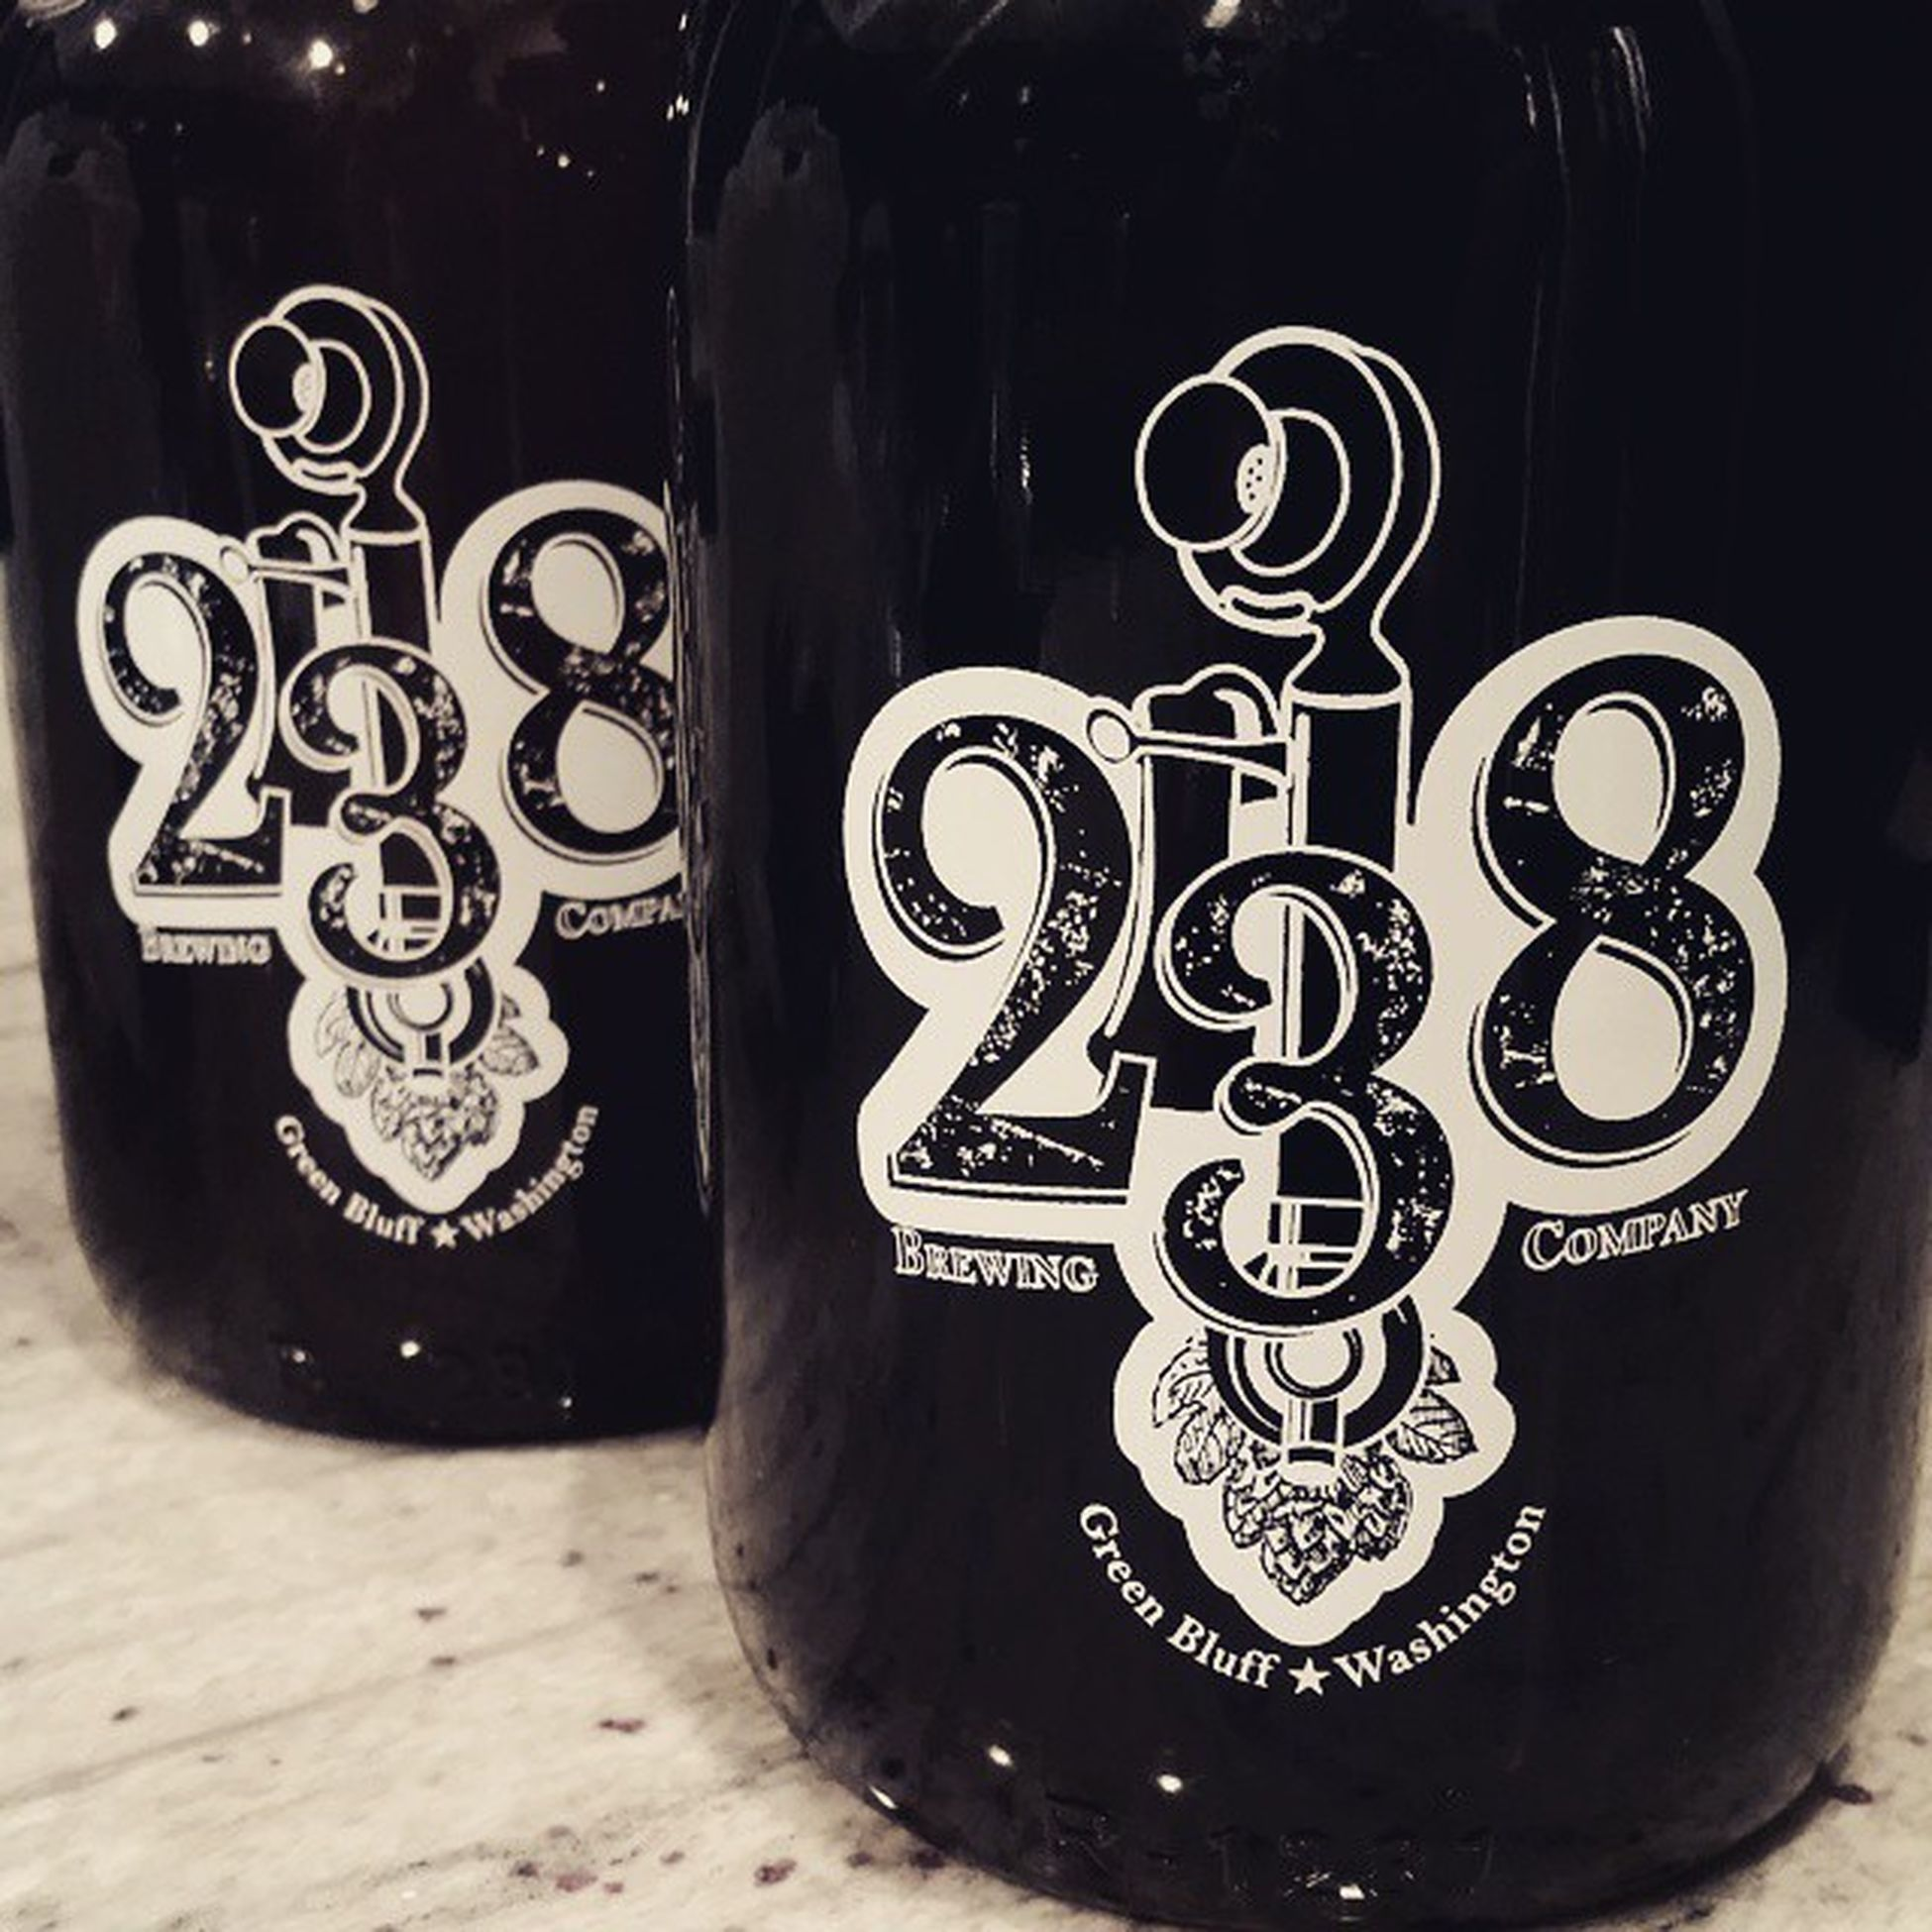 Great meeting with 238brewingcompany today. They make some amazing beer. Going to be huge. Check them out in Greenbluff one of the best up and coming small Craftbeer brewers